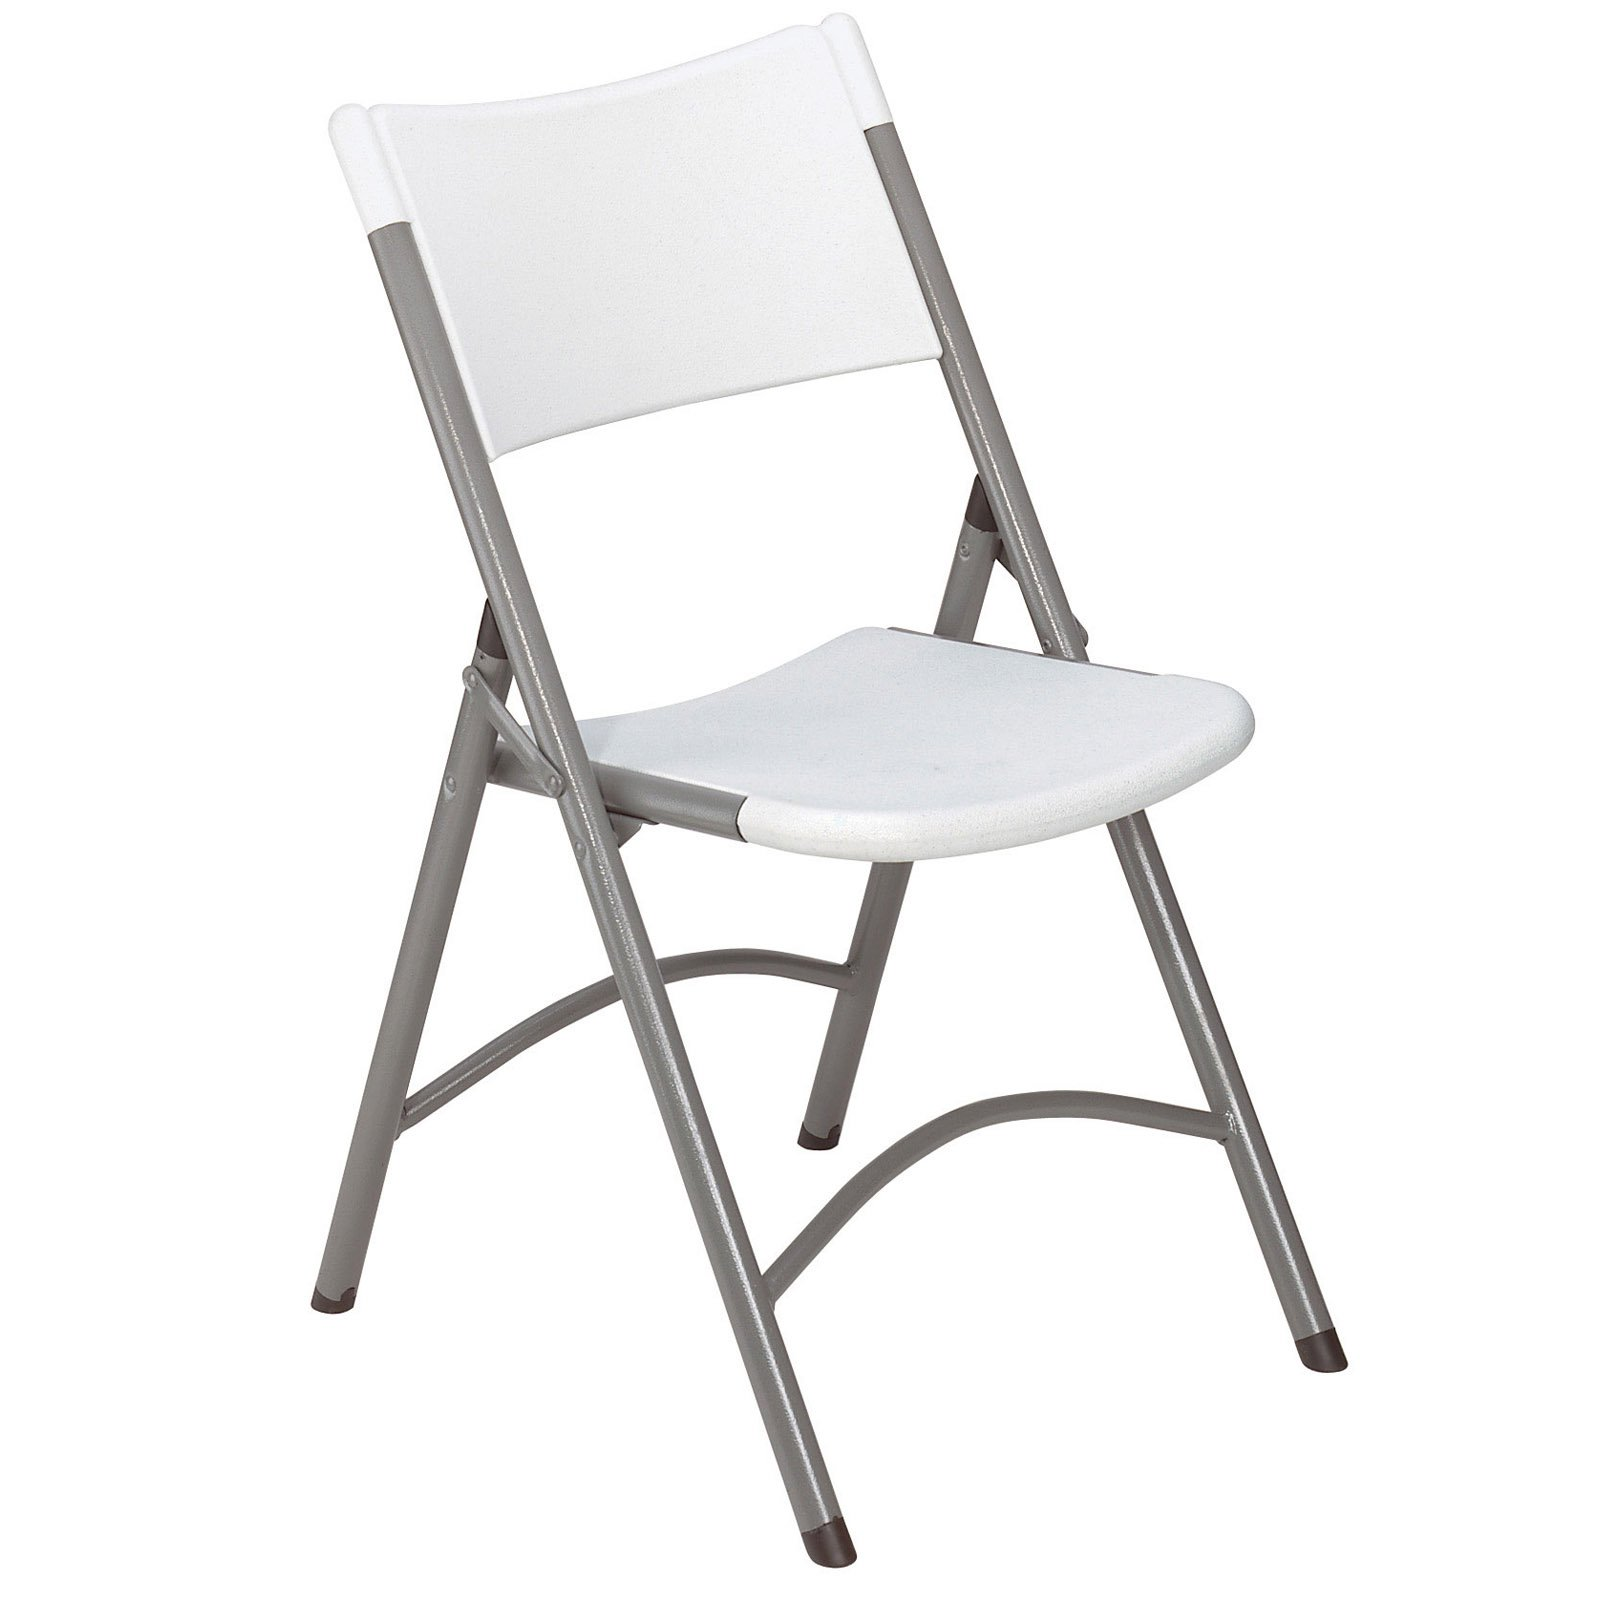 Resin folding chairs - National Public Seating Lightweight Blow Molded Folding Chair 4 Pack Walmart Com